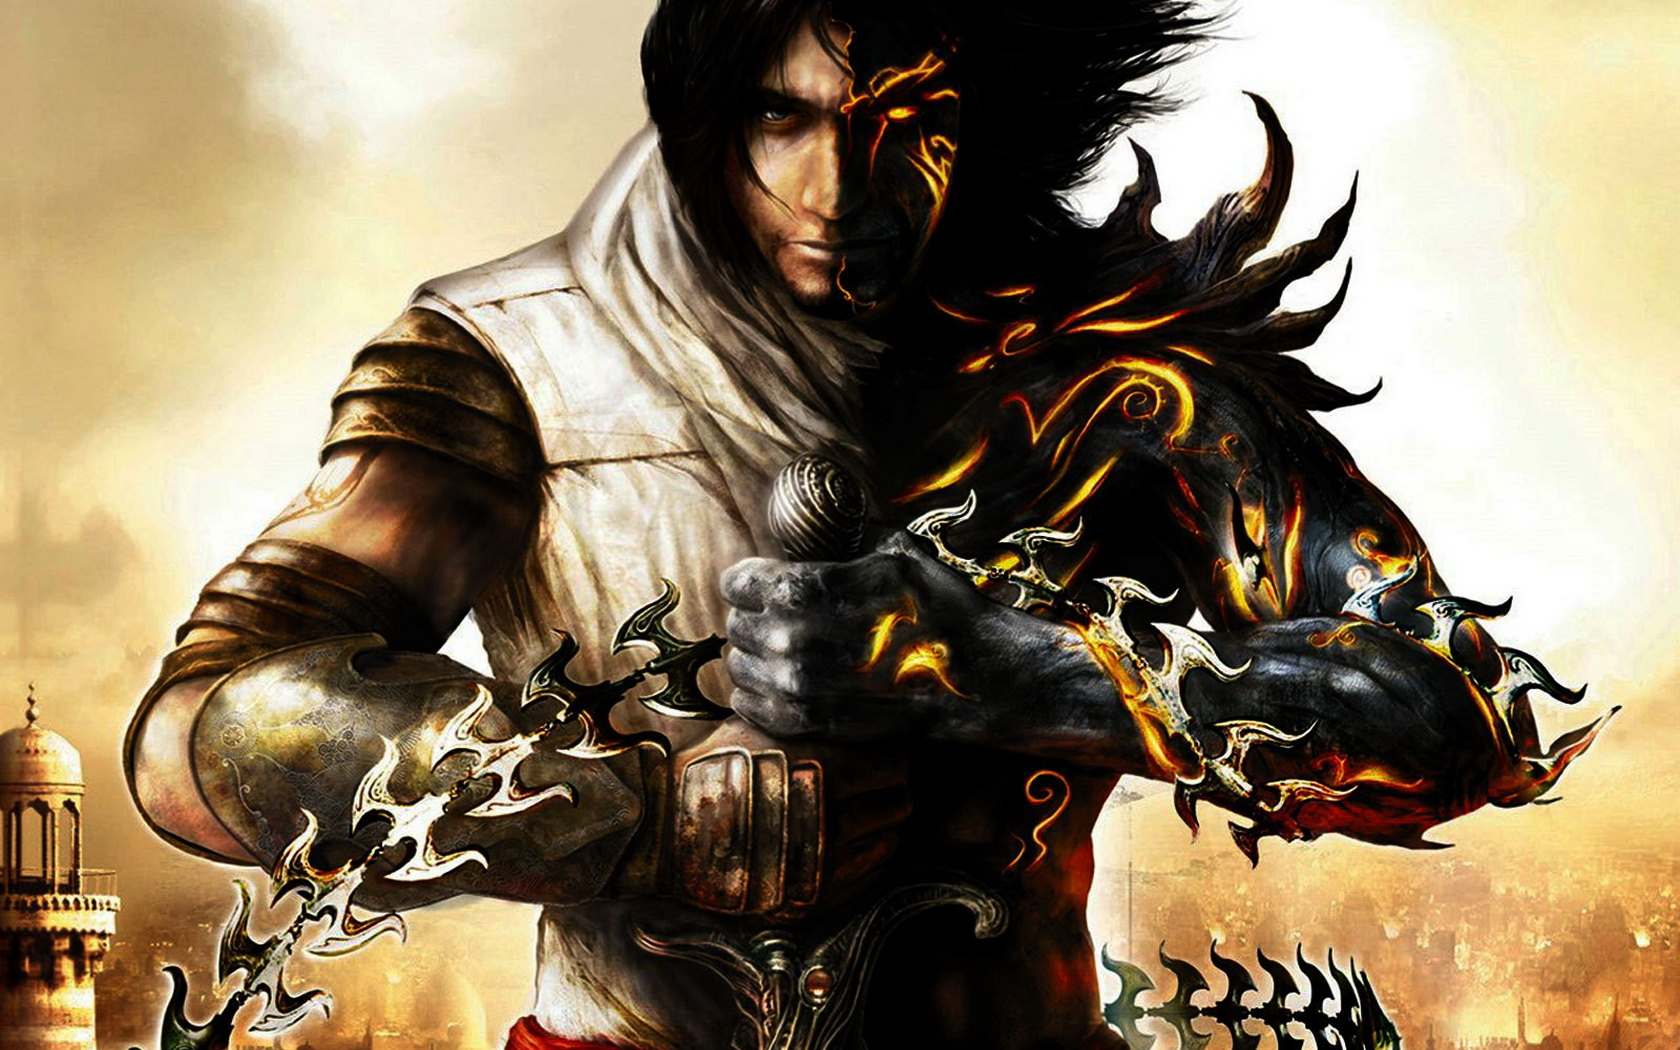 Desktops Backgrounds: Prince of Persia Movie Desktops ... |Prince Of Persia Movie Wallpapers